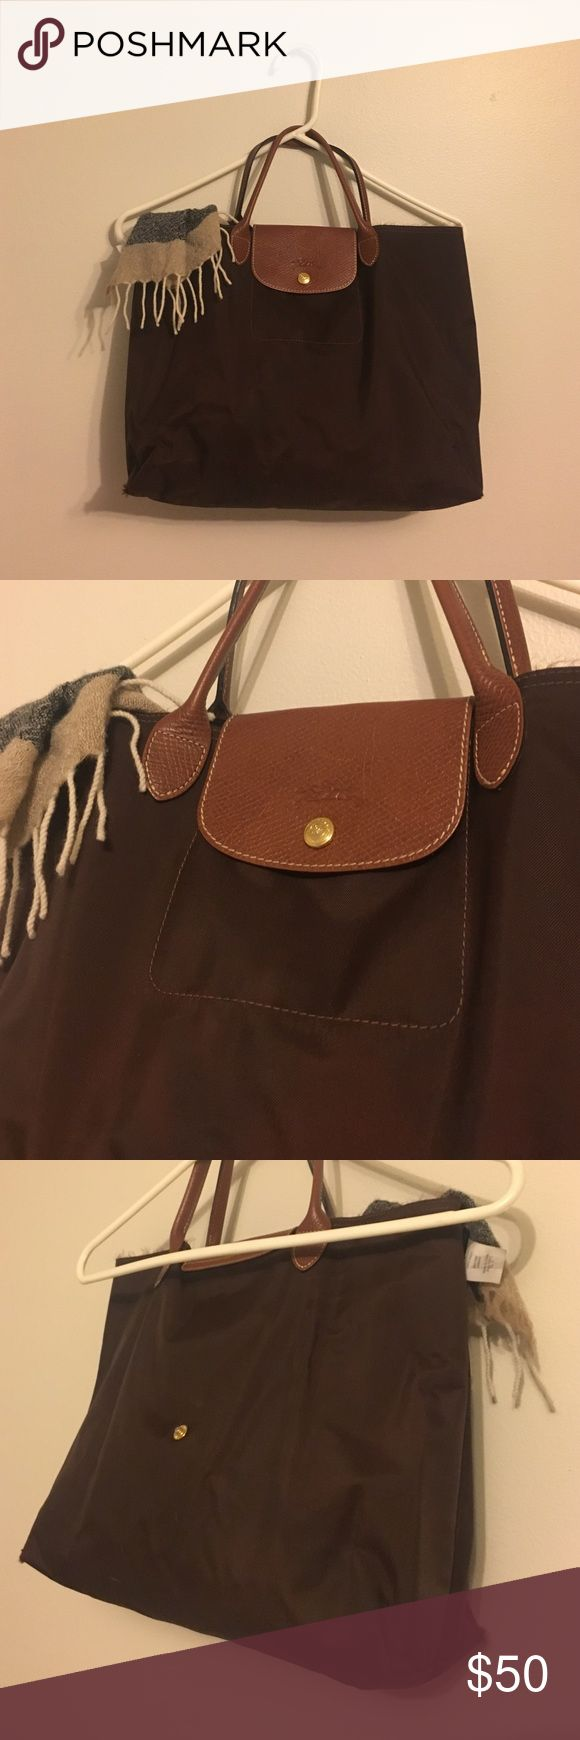 Longchamp medium size bag Purchased this chocolate brown medium sized bag in France so it is very authentic. It is the perfect bag to use on the go or what I used it for as a school bag. It does not have a zipper but a snap button. It can fit a small laptop in it. The bottom corners have small holes in them from wear and the top hem is slightly frayed but still almost as good as new! Longchamp Bags Totes